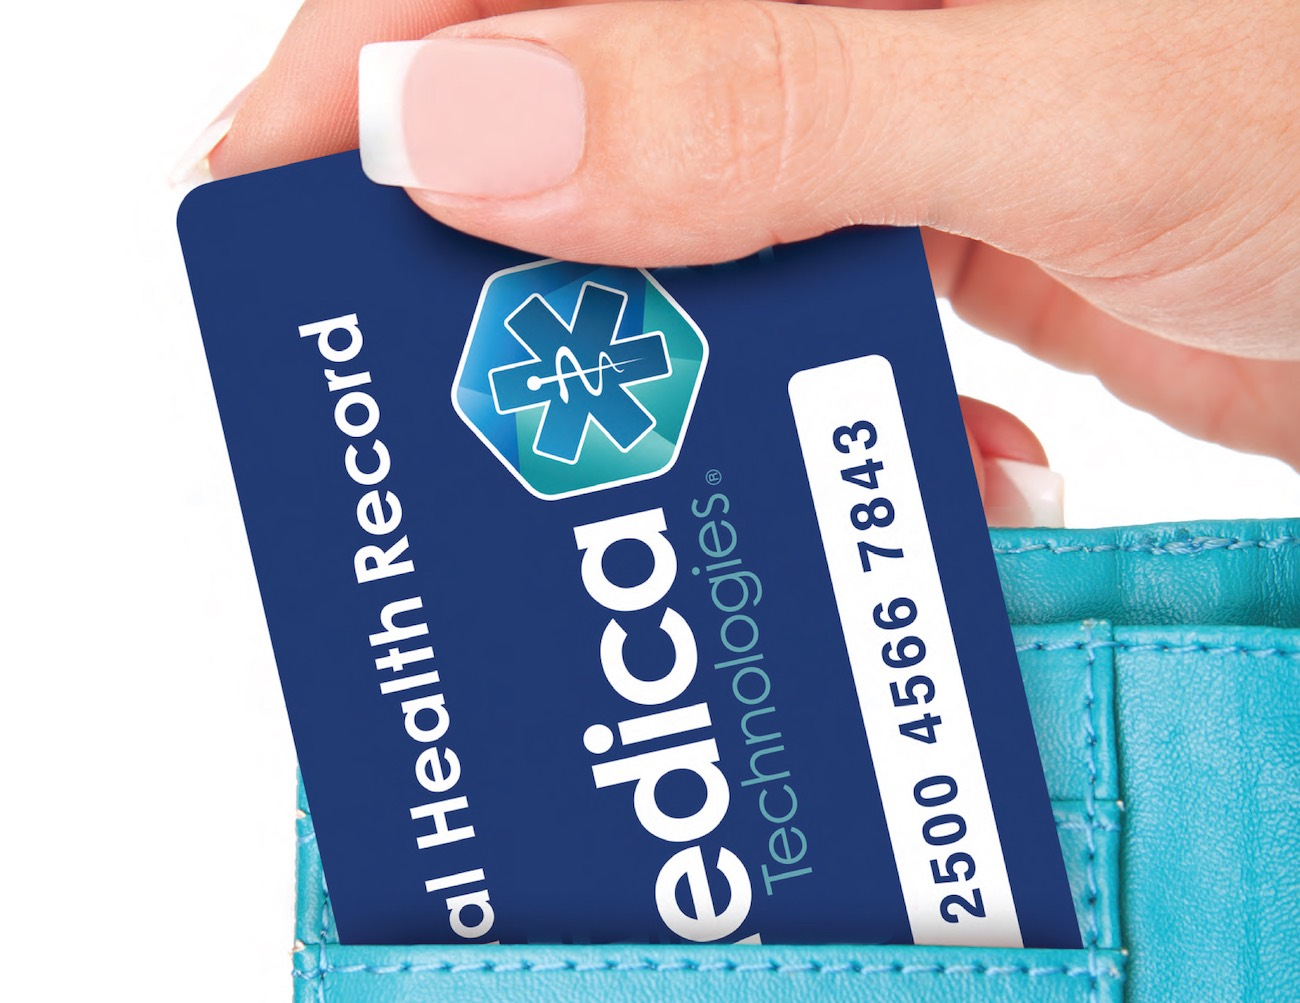 Secure Personal Health Record Card